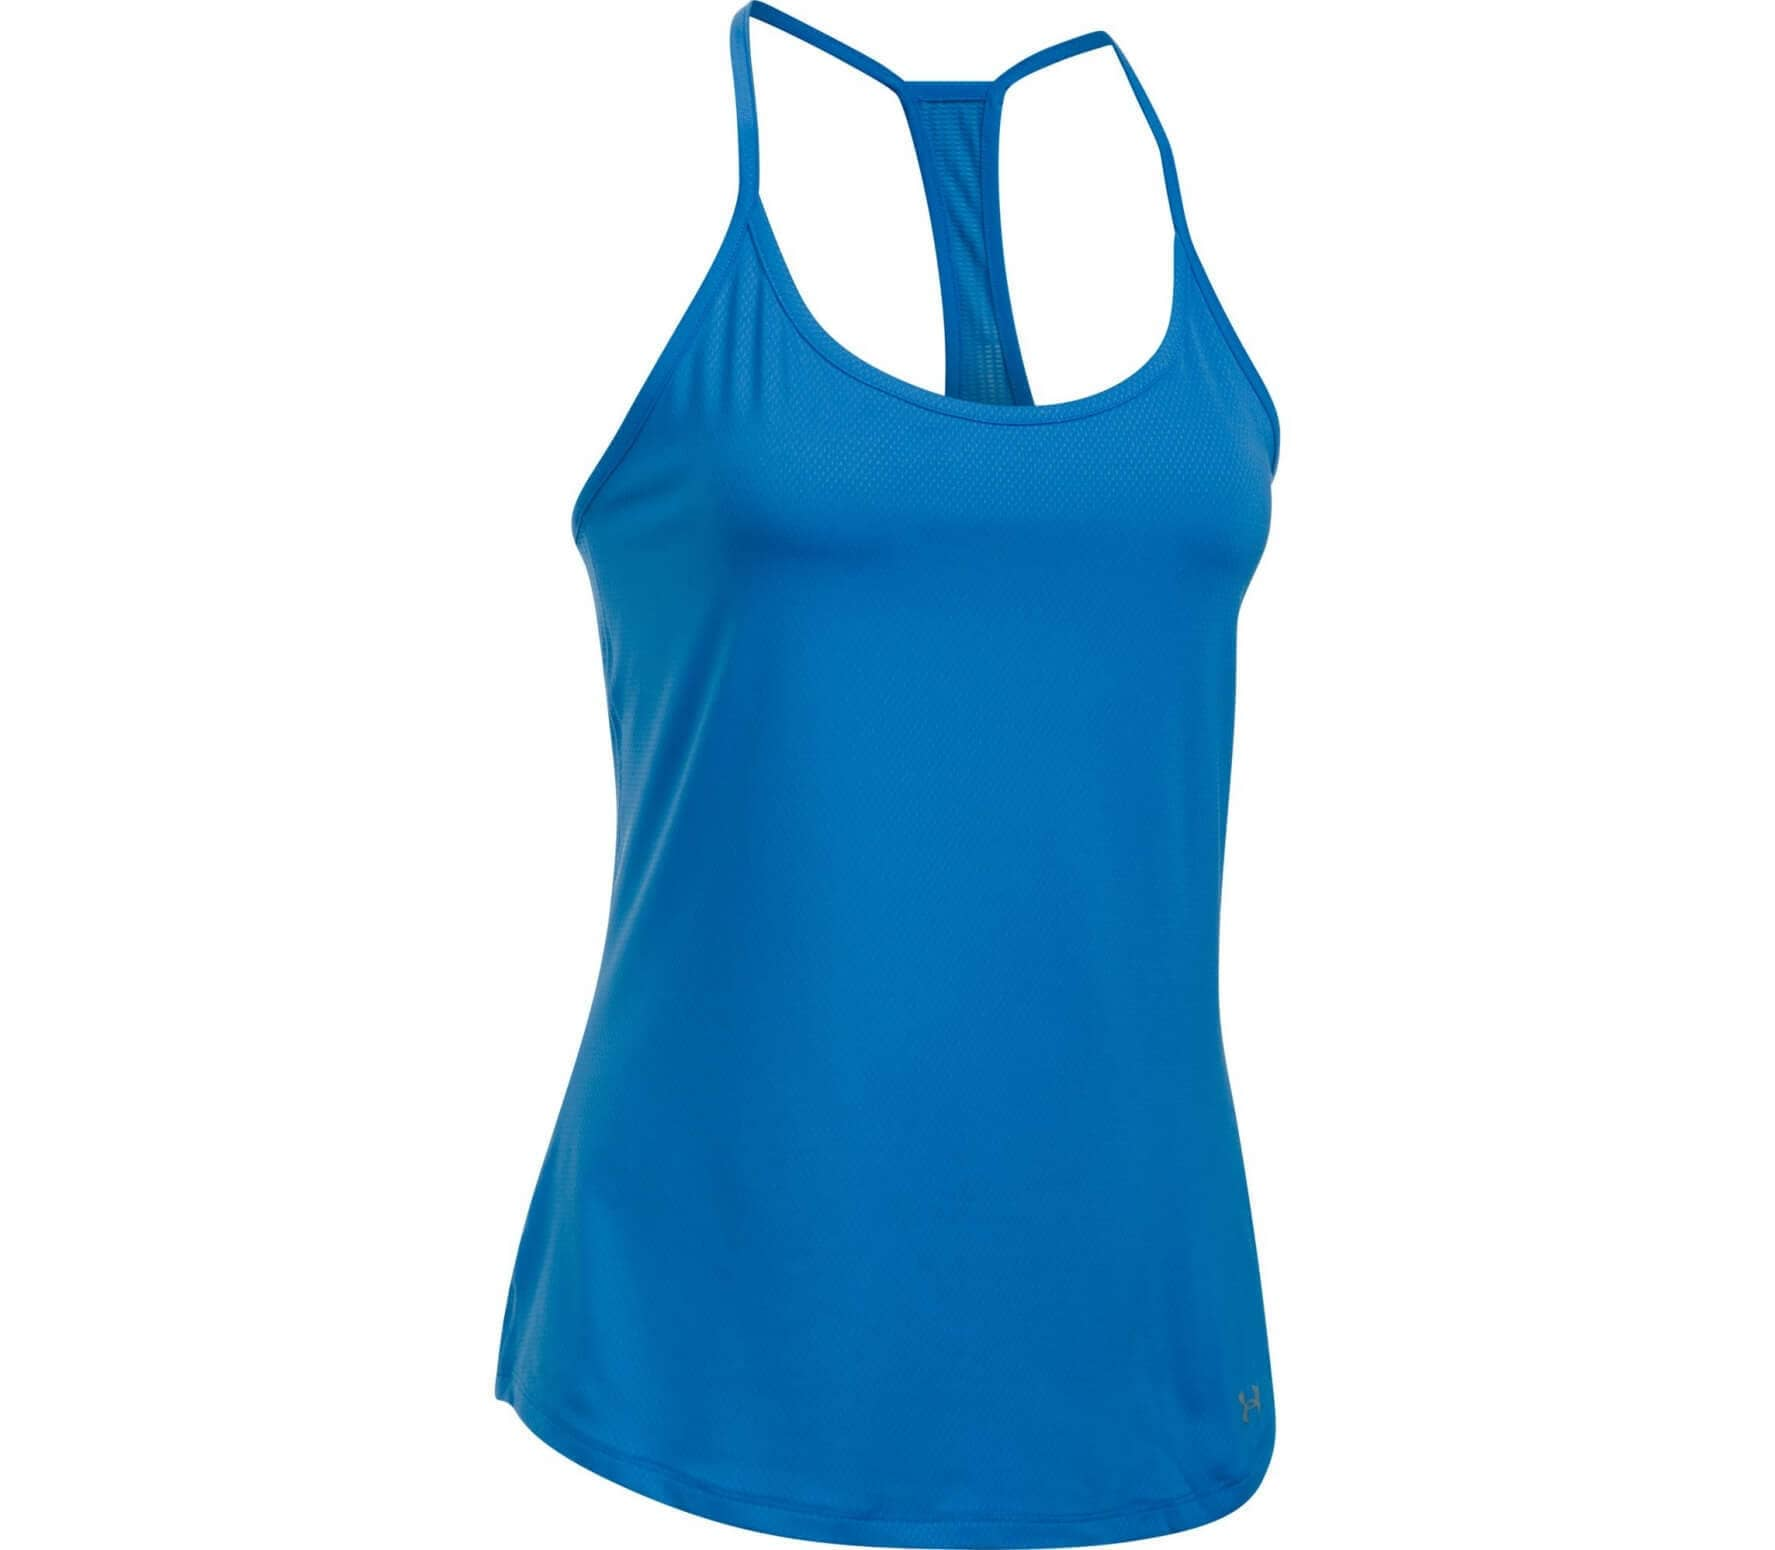 16eaf83131 Under Armour - Fly By Racerback women's running tank top top (blue)